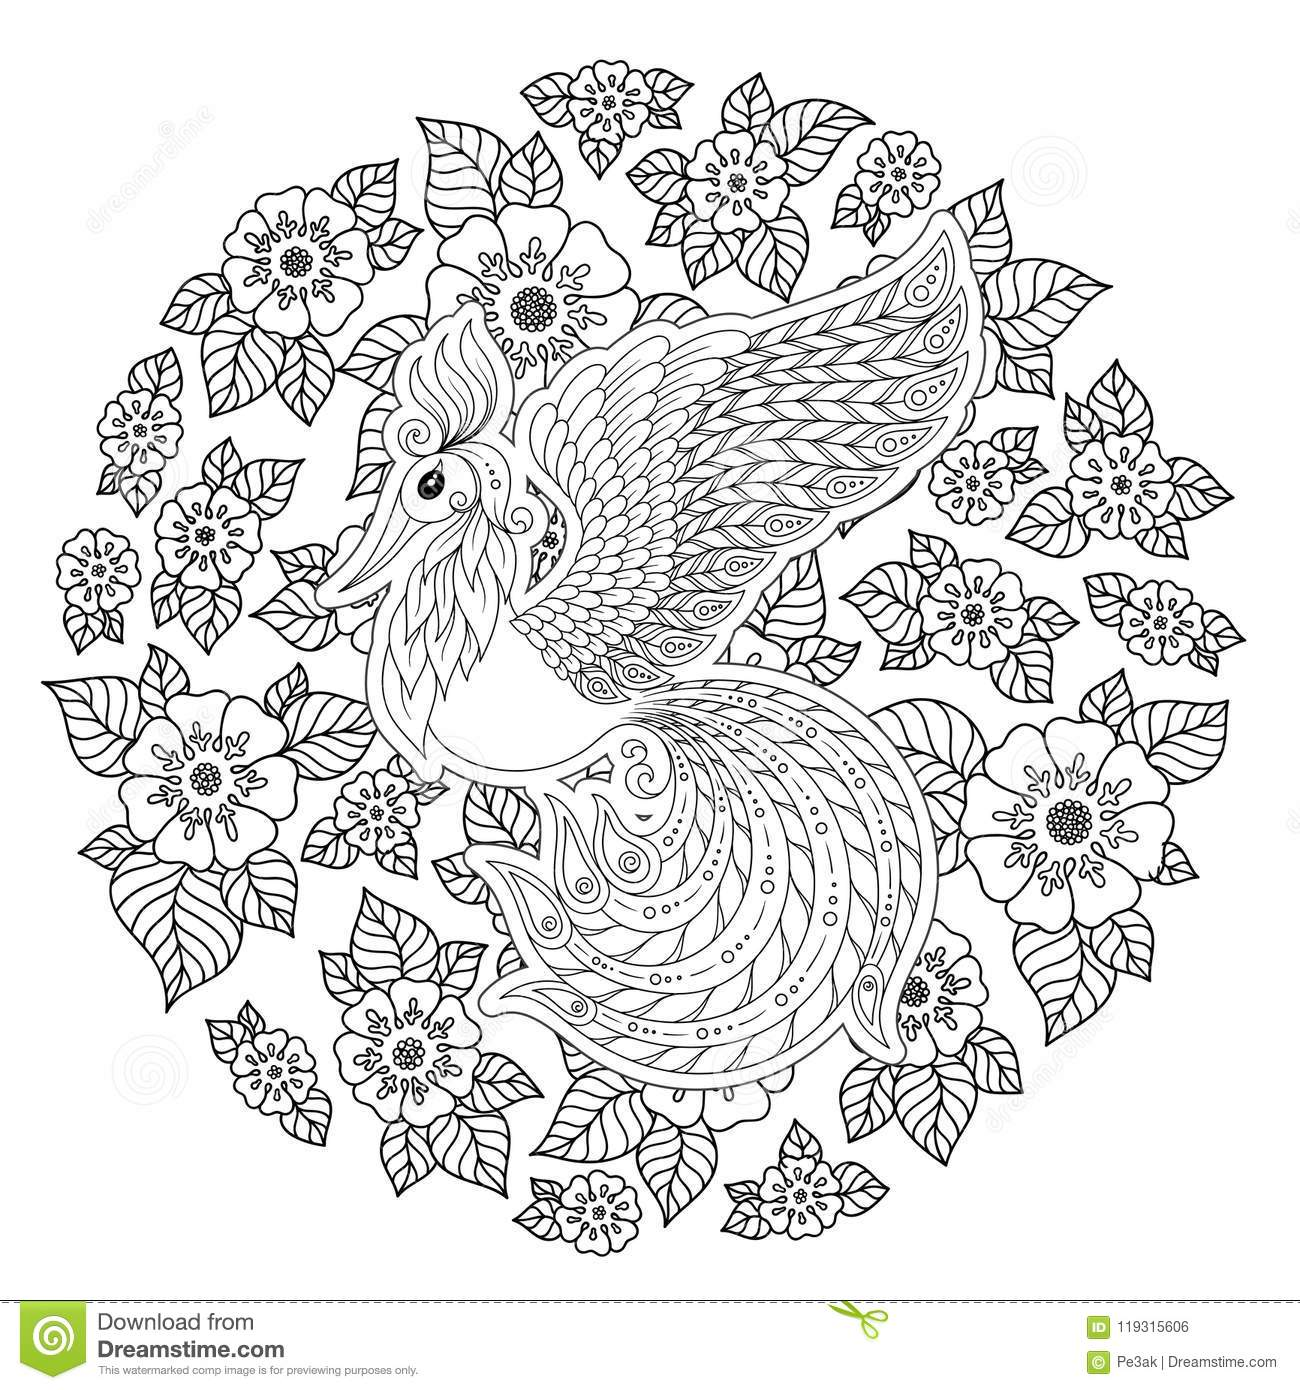 Firebird For Anti Stress Coloring Page With High Details Stock